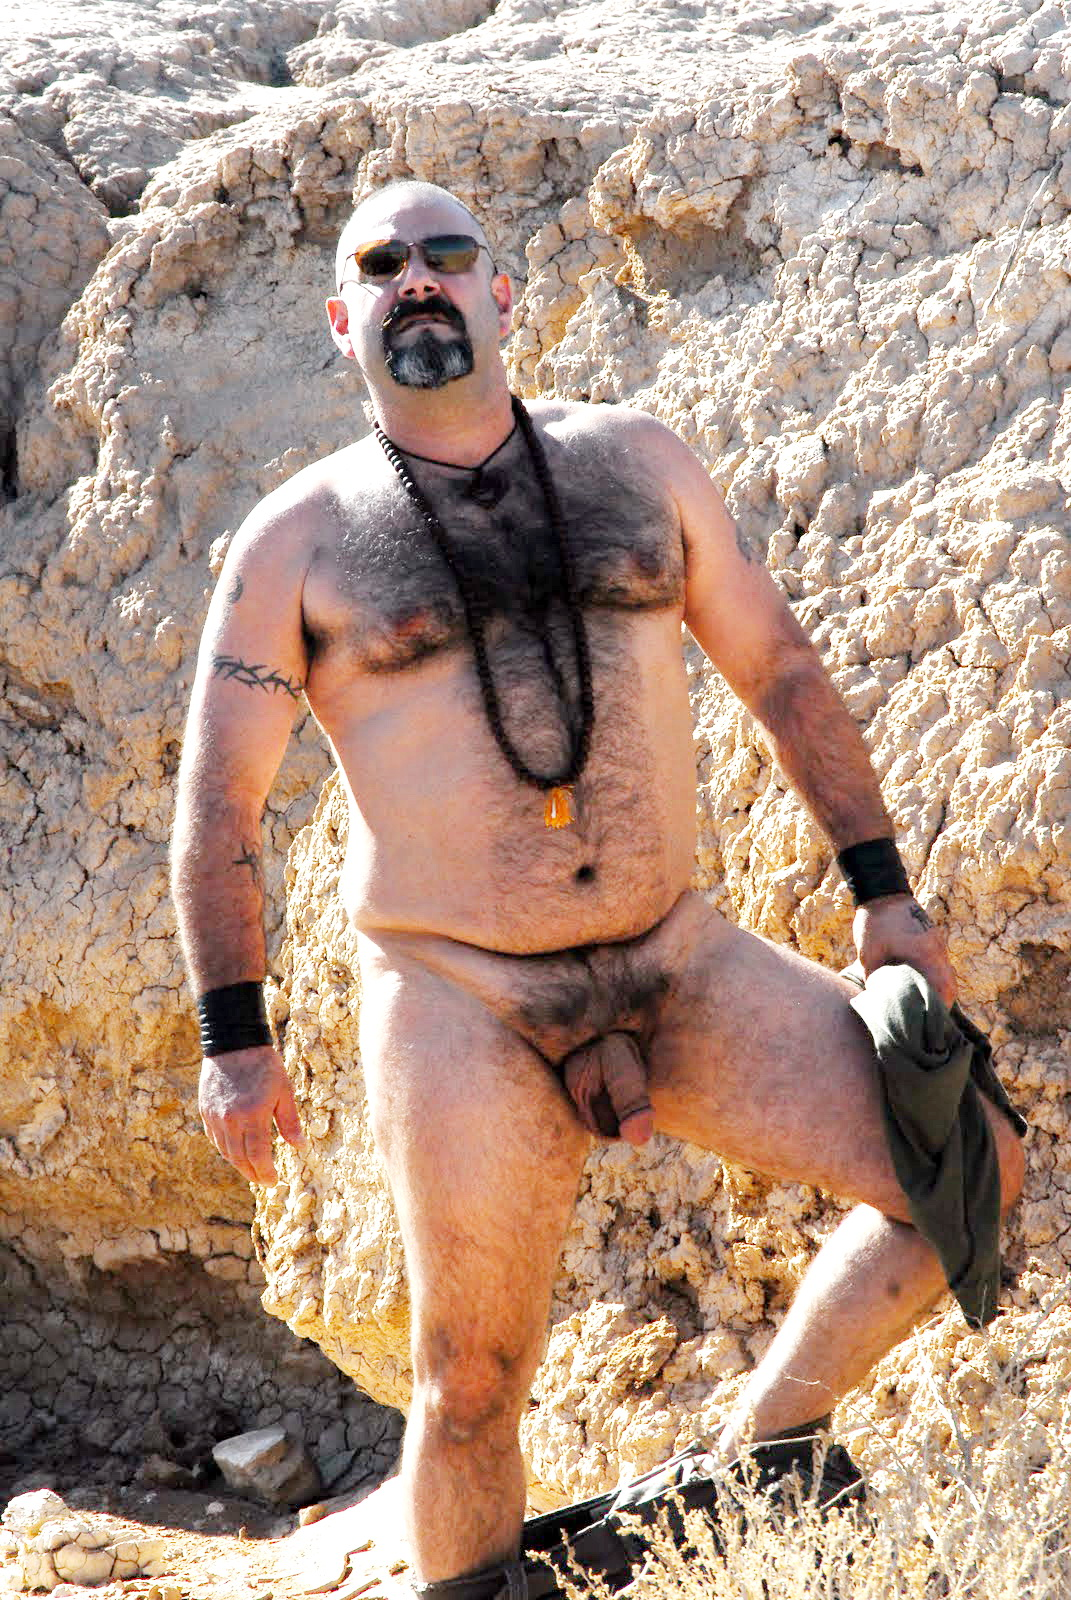 into-chubby-hot-naked-daddies